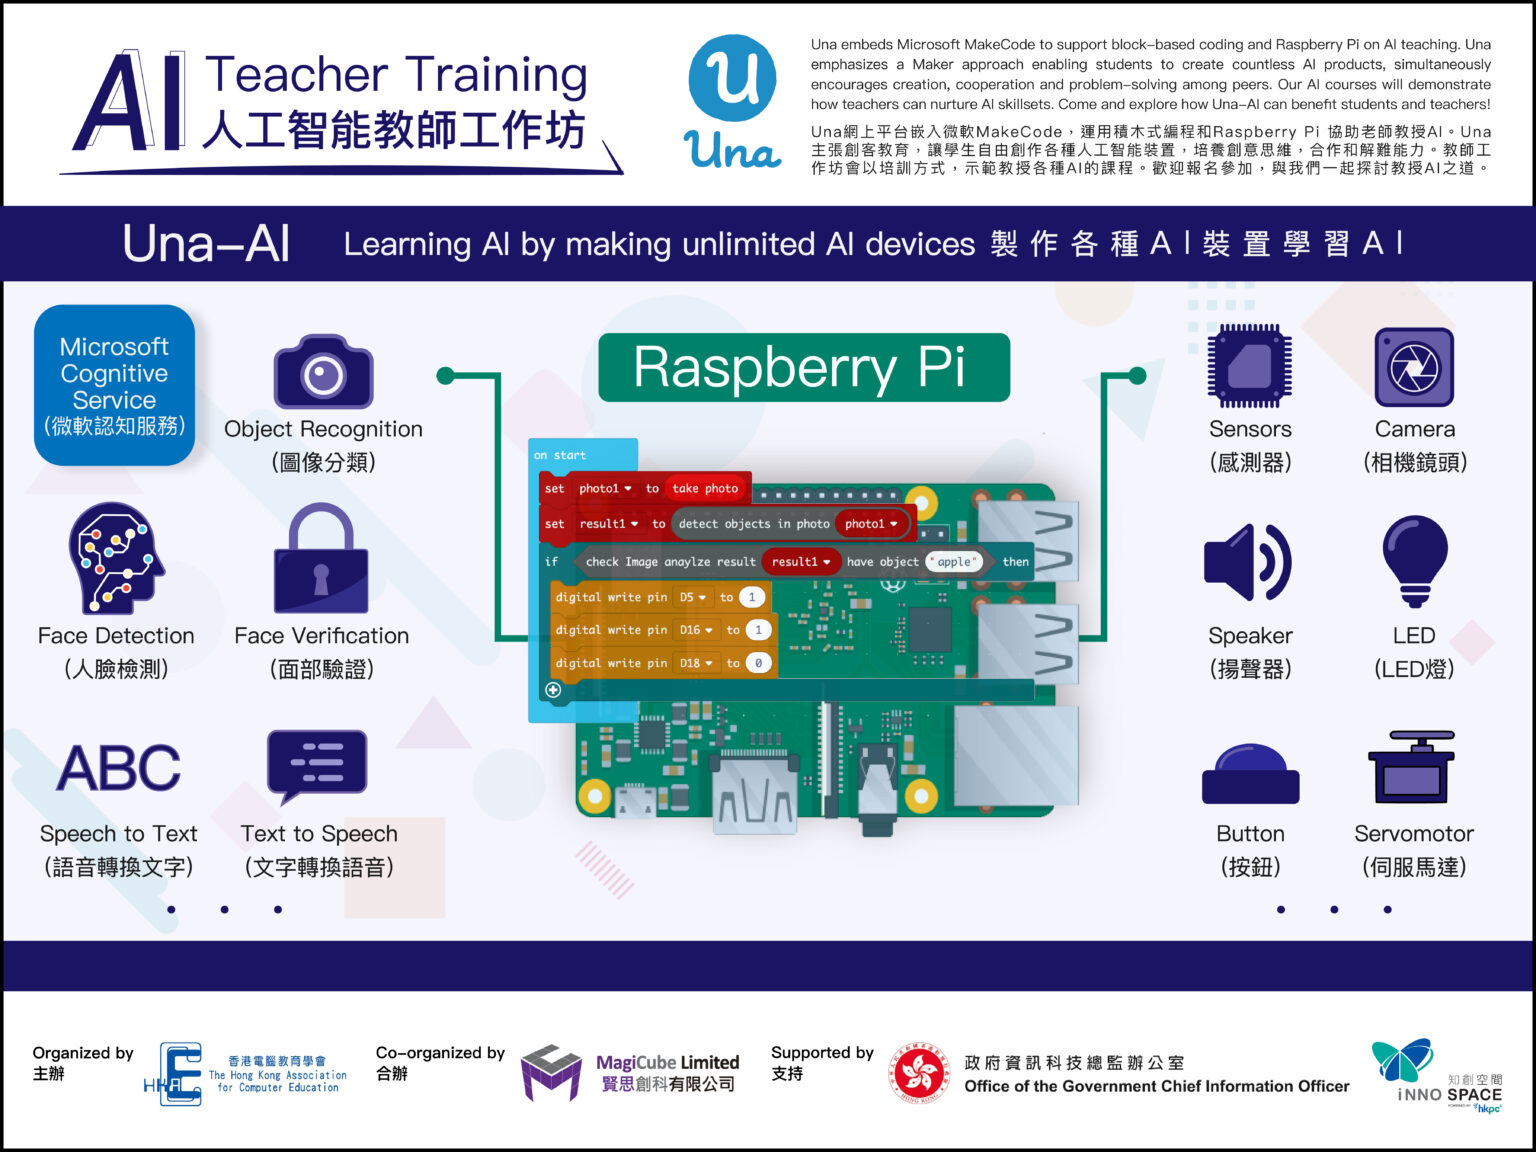 AI Education Teacher Training, co-organized by HKACE and supported by OGCIO and HKPC Innospace